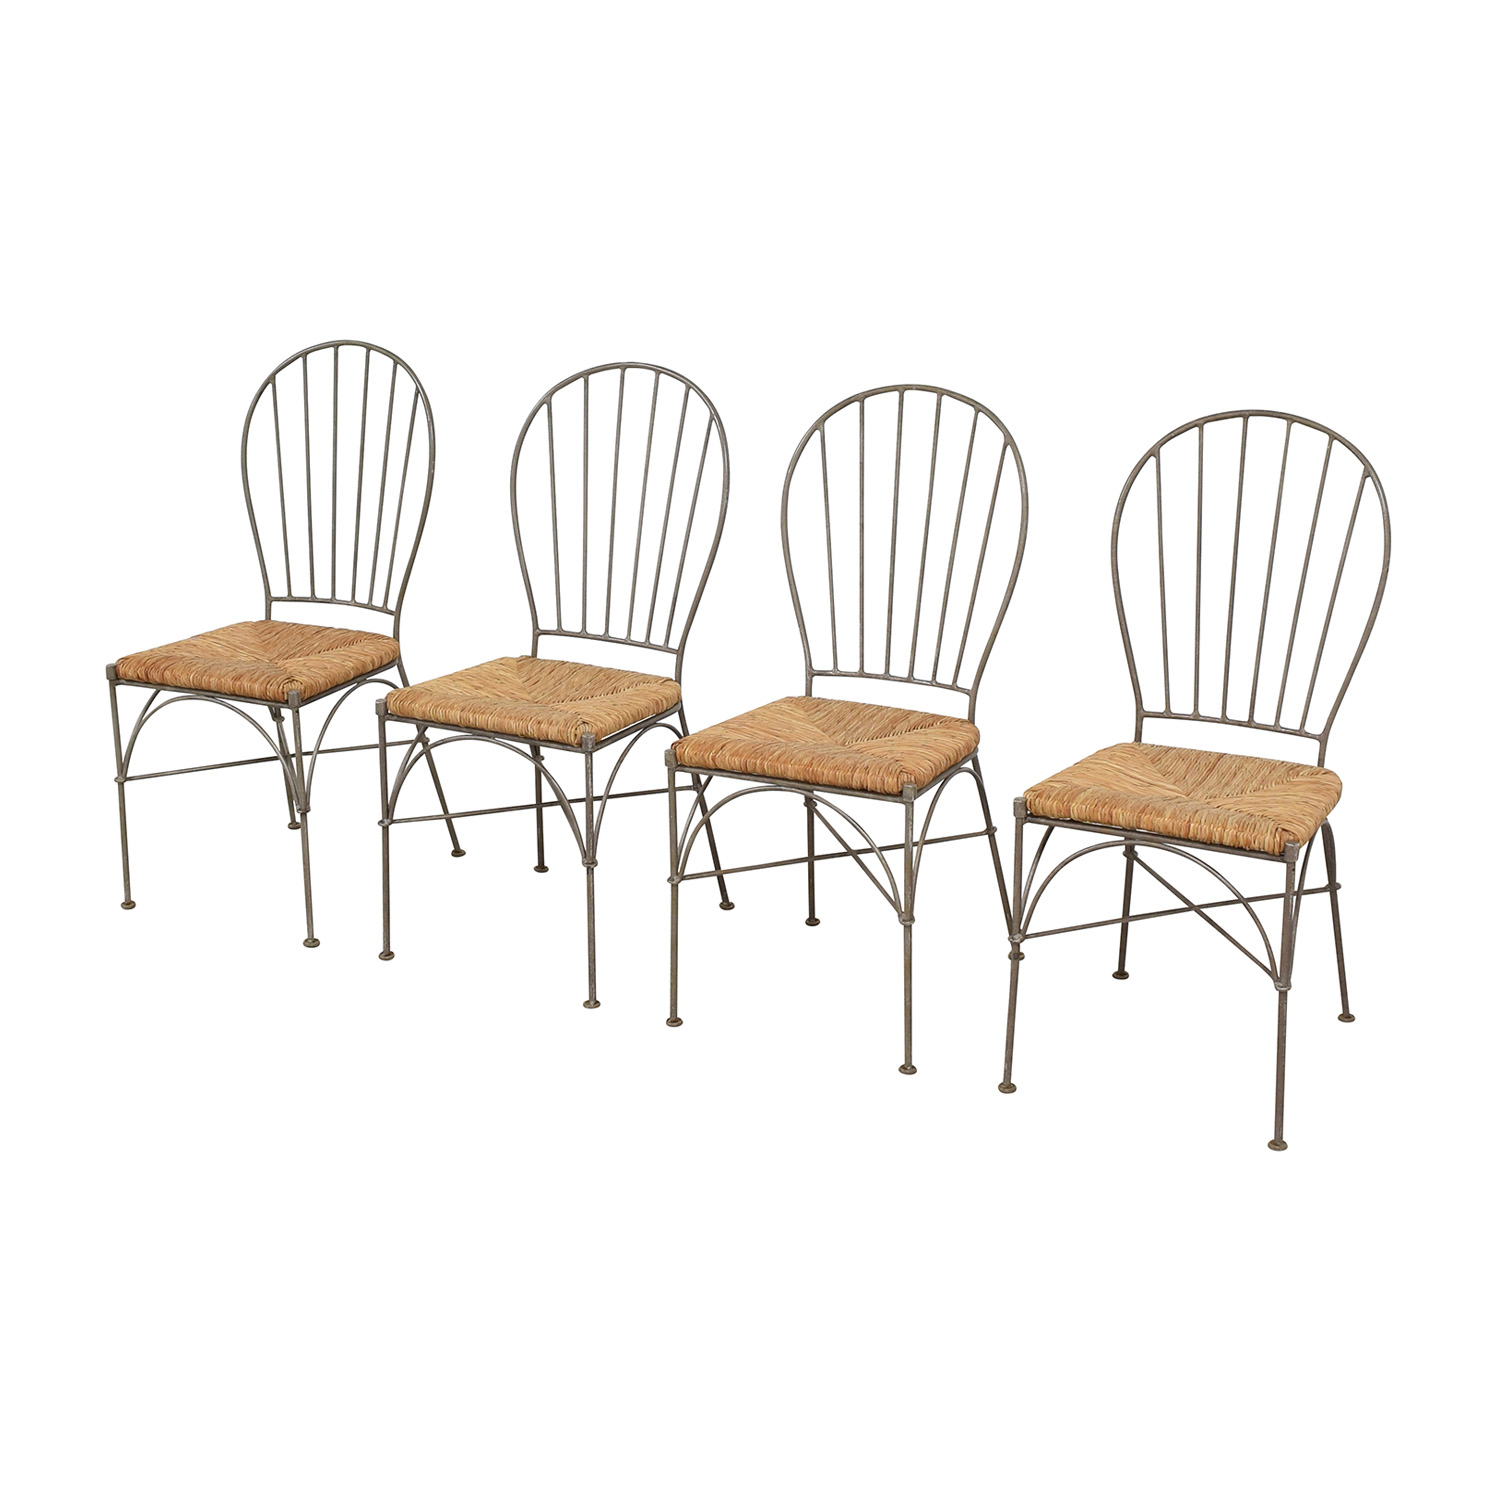 Pier 1 Woven Seat Dining Chairs / Dining Chairs